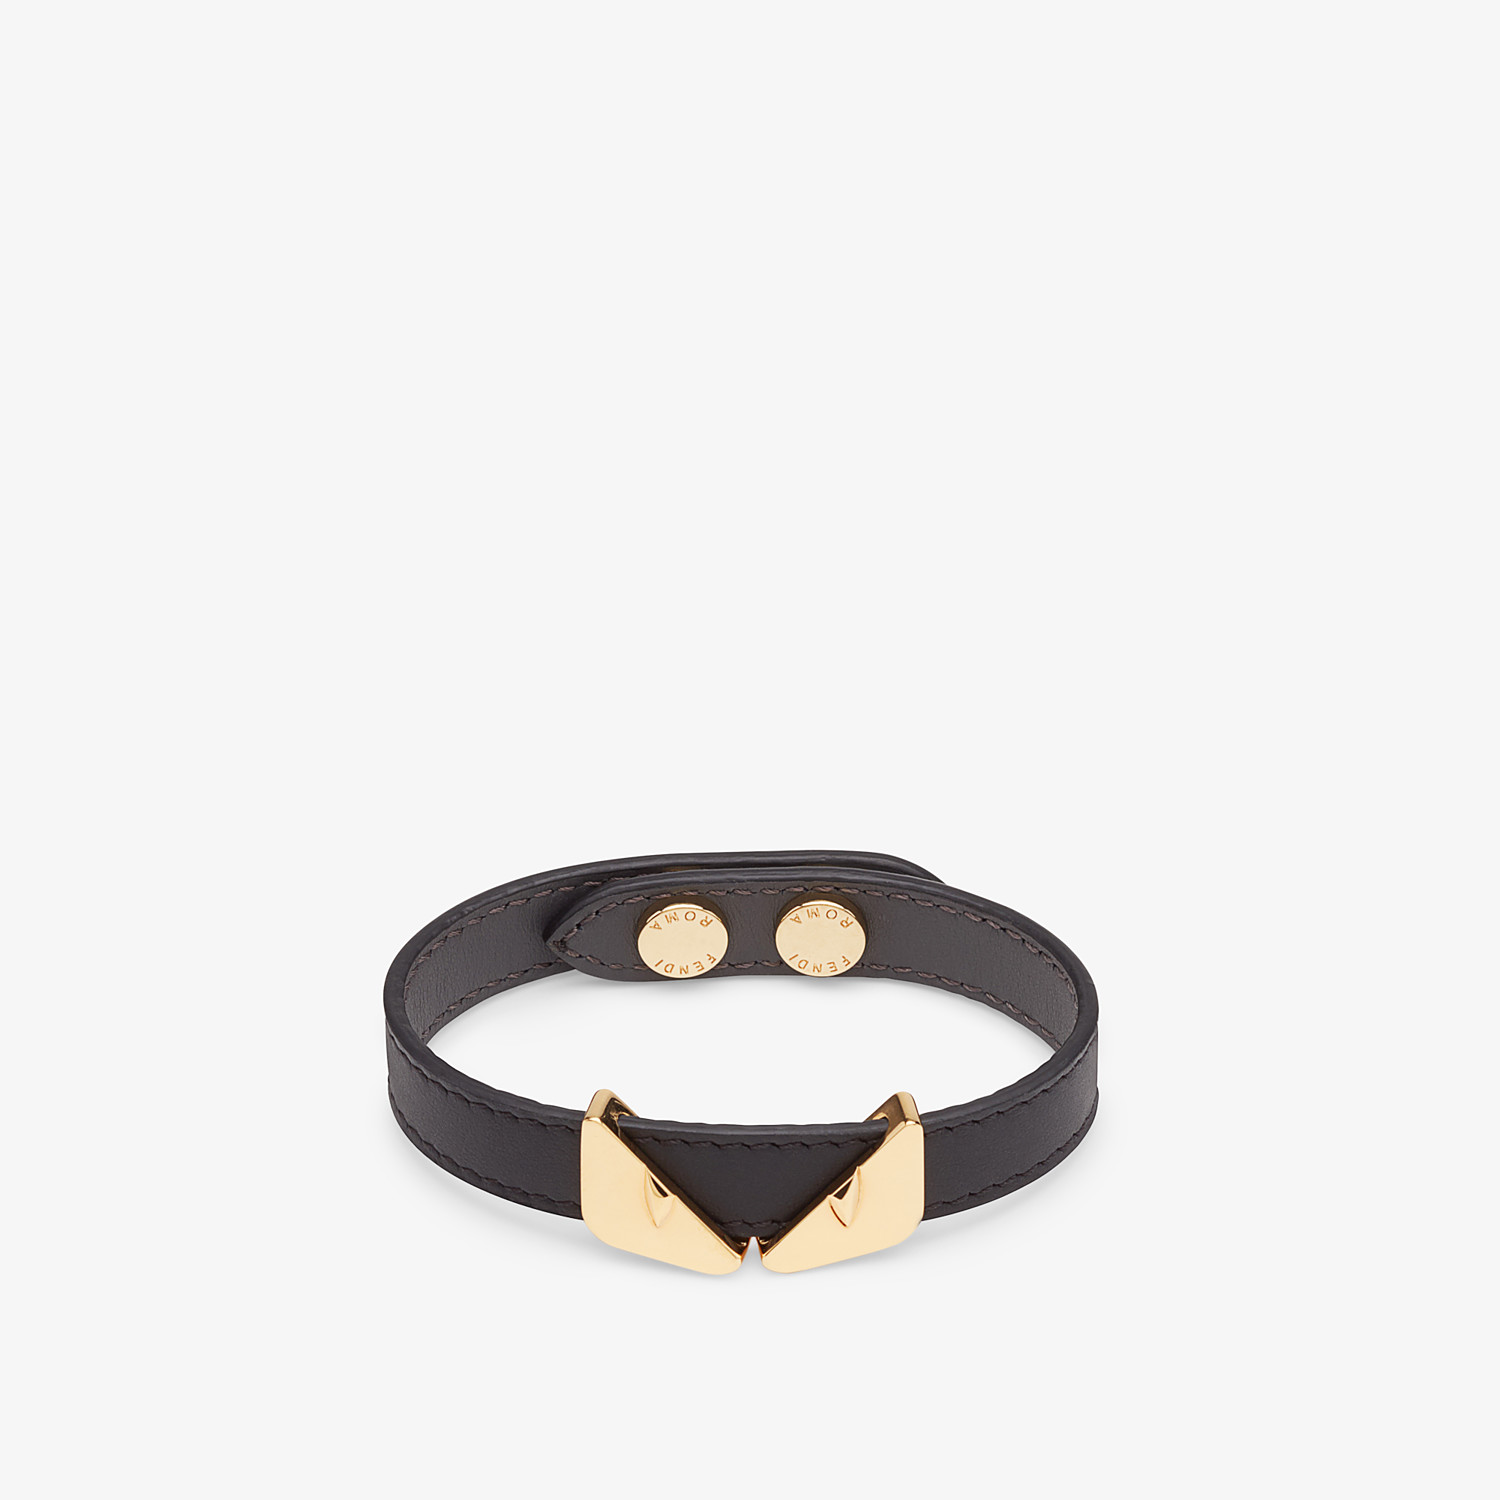 FENDI BRACELET - Black bracelet - view 1 detail